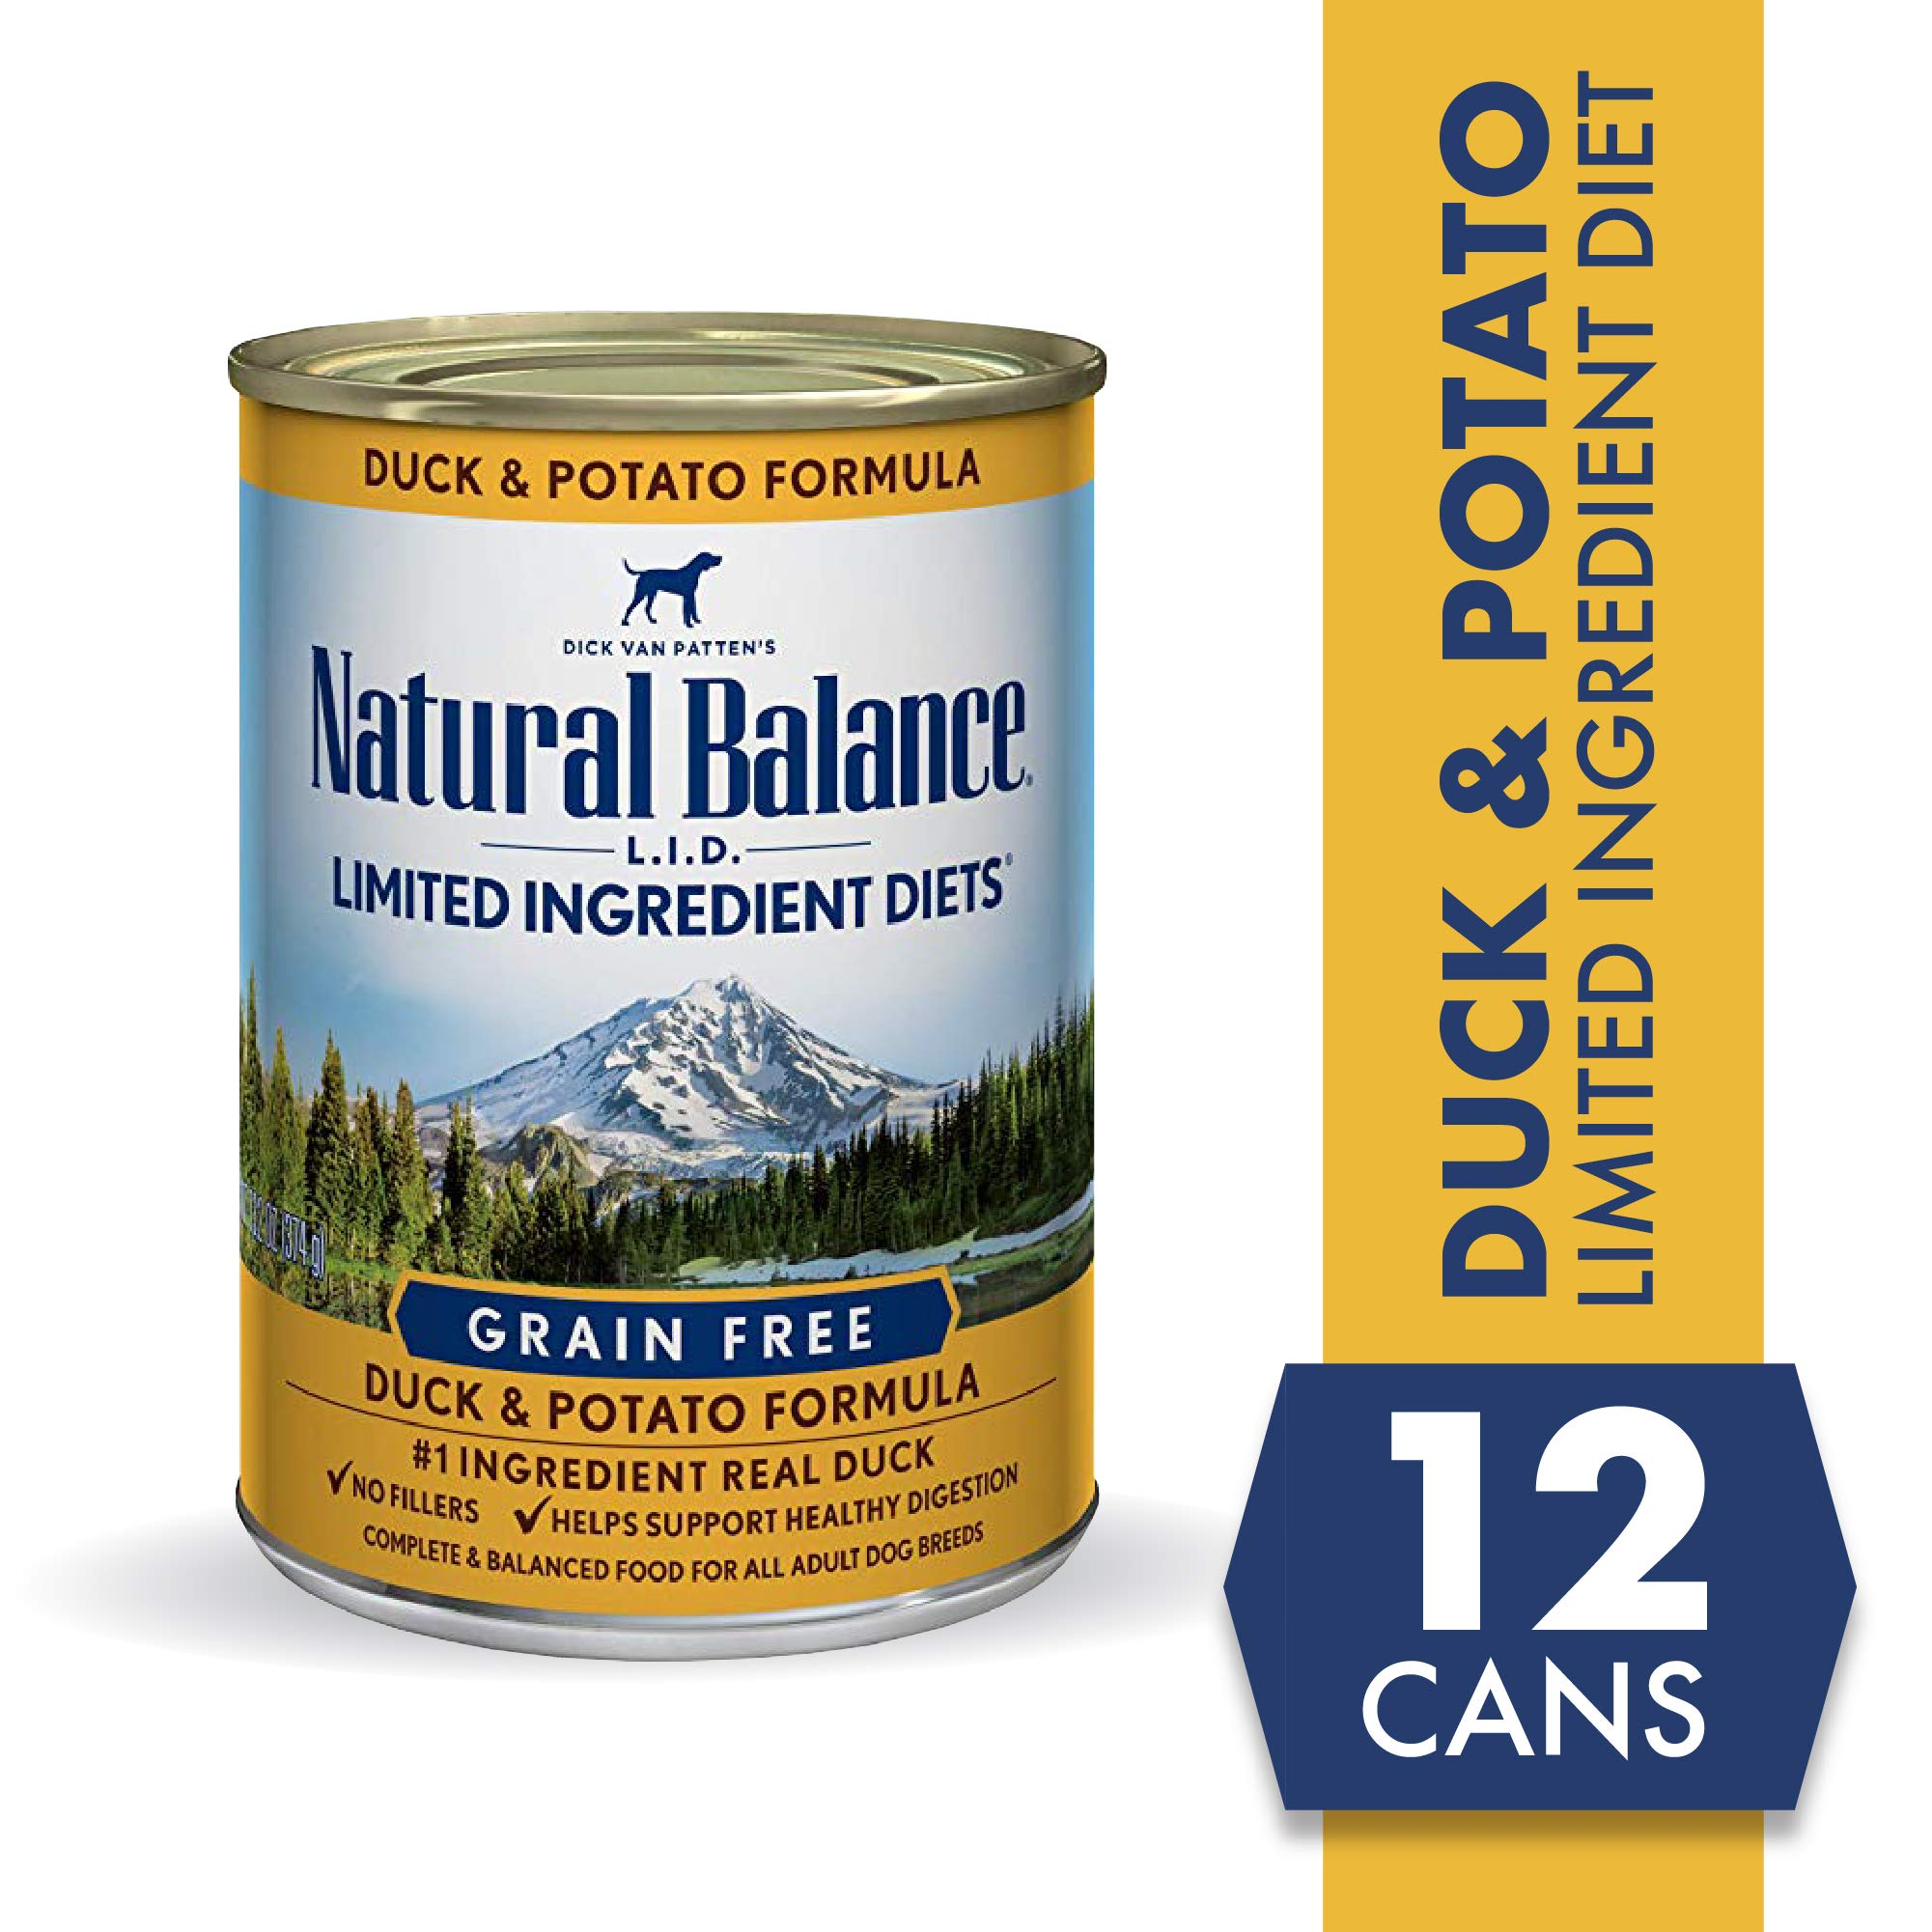 Natural Balance LImited Ingredient Diets Duck & Potato Formula Wet Dog Food, 13 Ounces (Pack of 12), Grain Free by Natural Balance